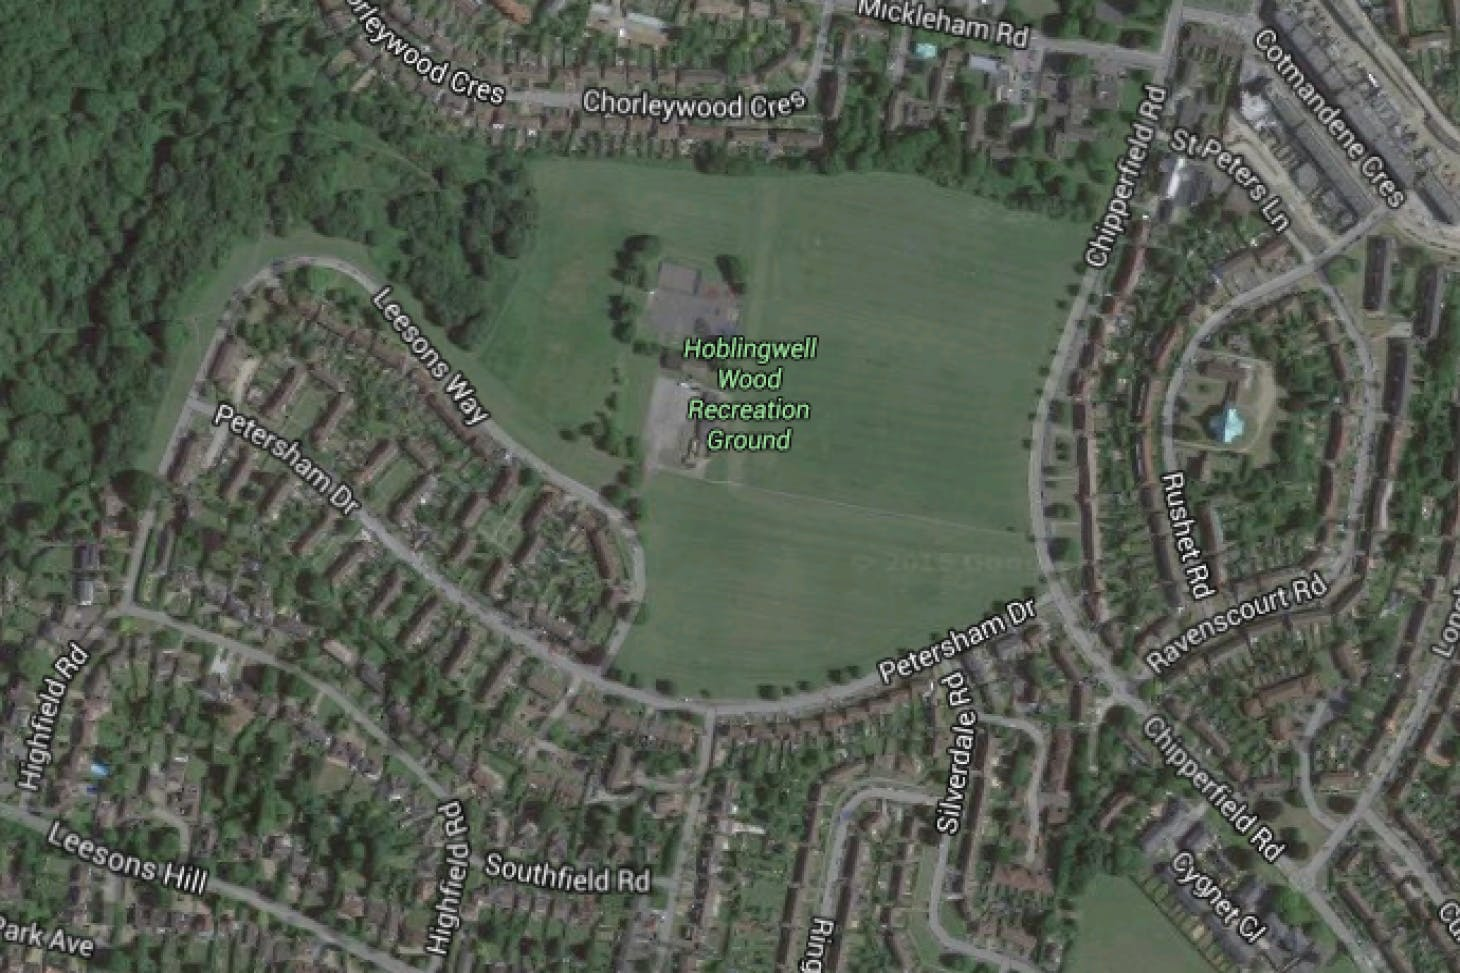 Hoblingwell Wood Recreation Ground 11 a side | Grass football pitch